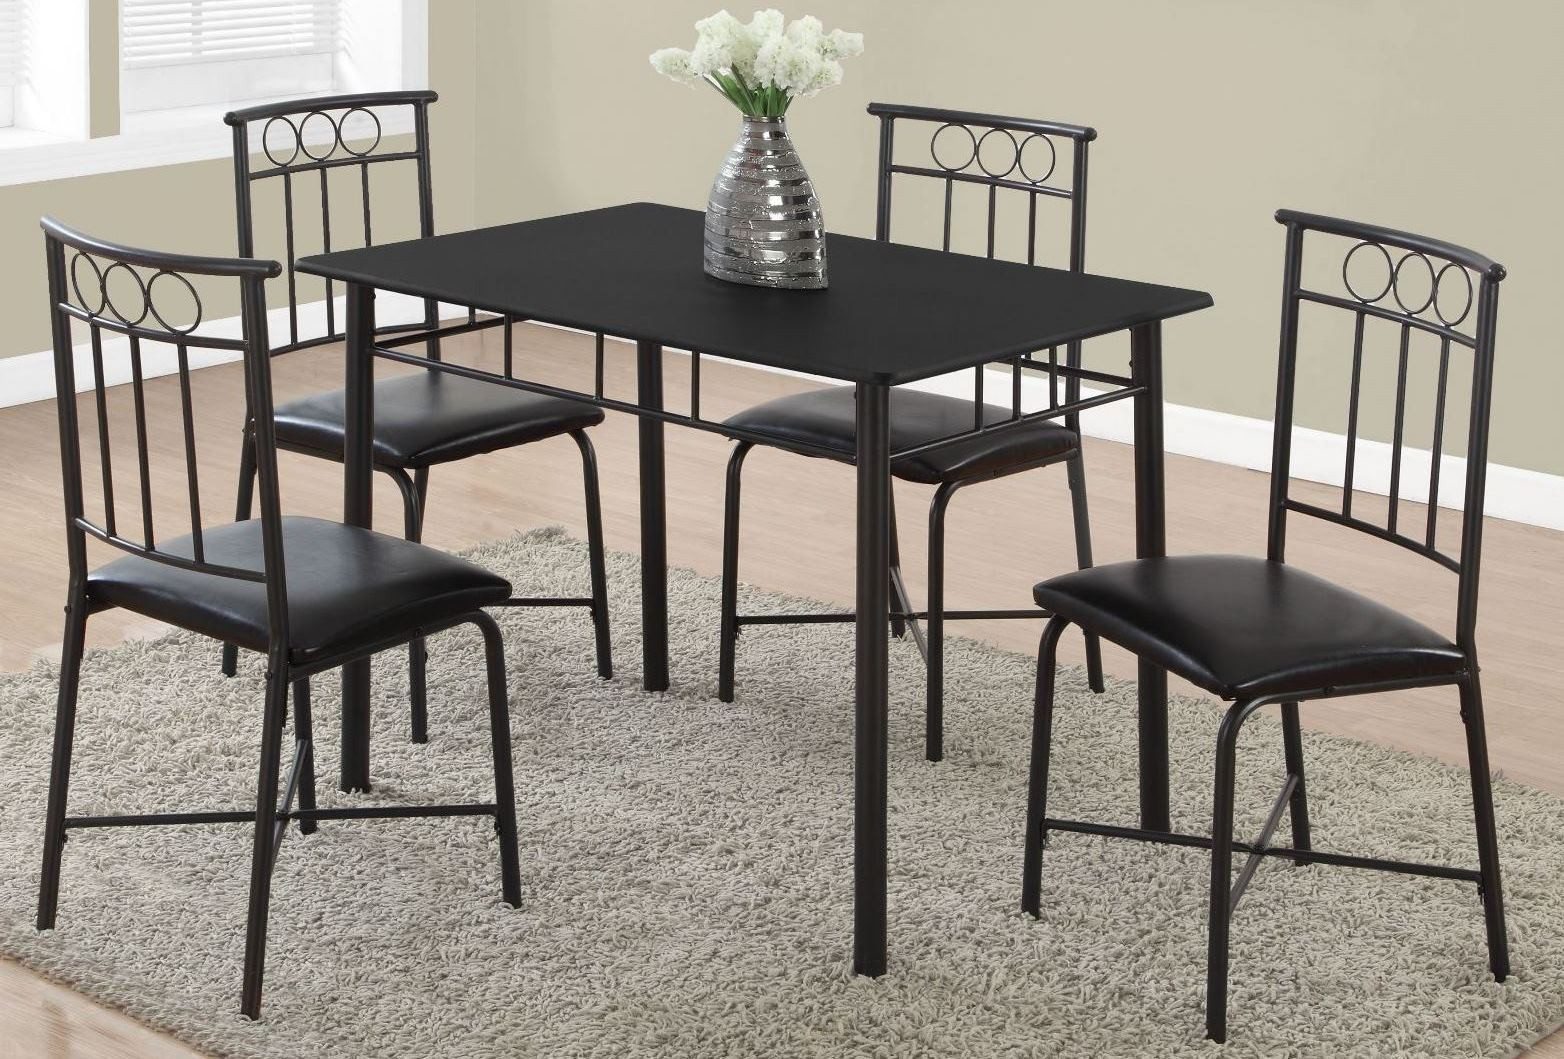 Black Metal 5 Piece Dining Room Set, 1018, Monarch. Desk Calendar Pad. Plastic Drawer Tower. Drafting Table Top. Desk Rental London. Things To Organize Your Desk. Till Cash Drawer. Leather Table Top. 70 Inch Round Table